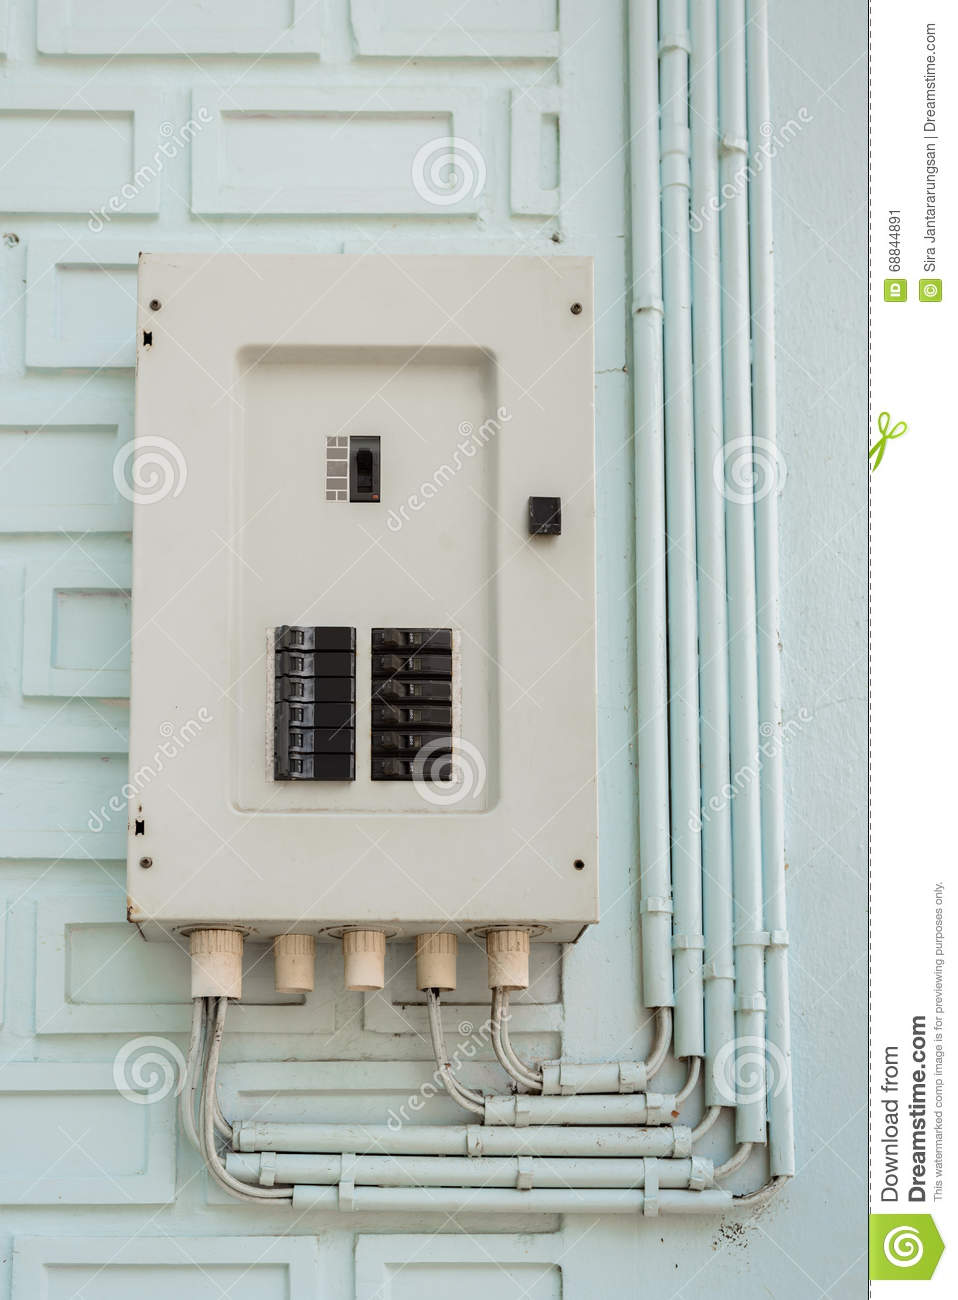 medium resolution of electric panel fuse box and power pipe line stock image image of diazed fuse original